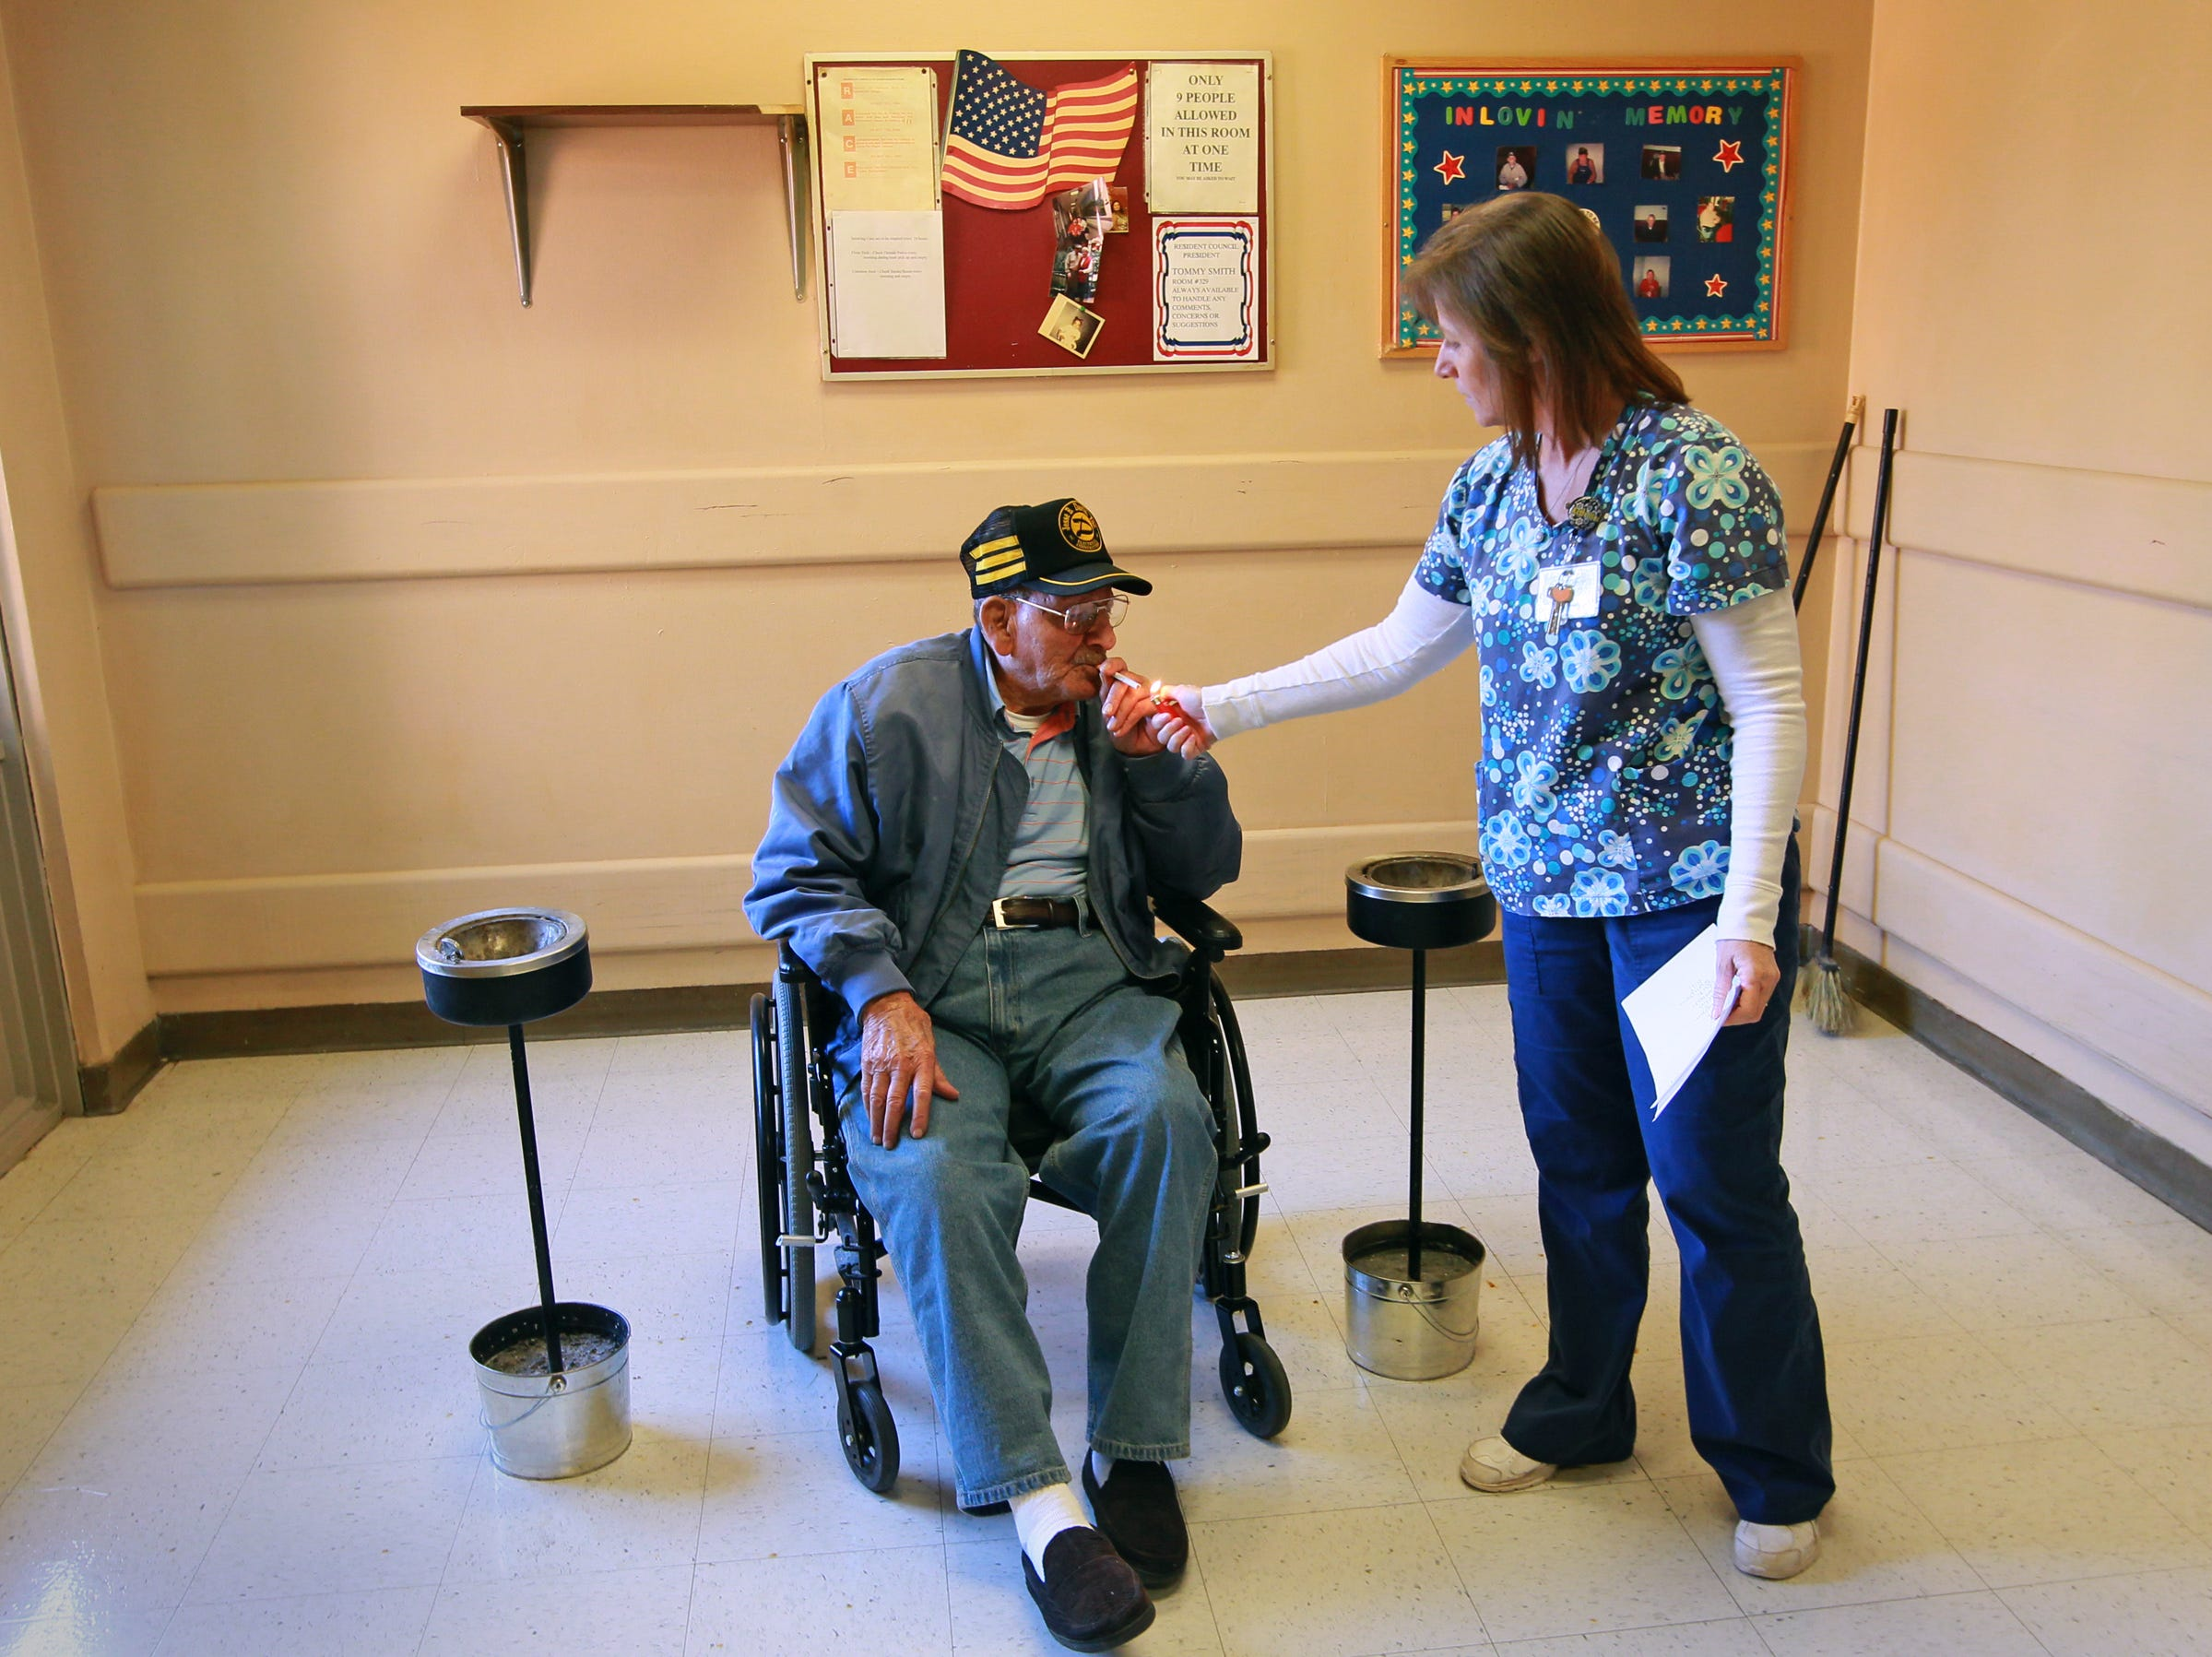 """Ernest Butler, who served in the U.S. Army starting in 1945, gets help lighting a cigarette from Angie Brock, assistant activities director, takes smoke breaks in a designated room at Richard Campbell Veterans Nursing Home in Anderson. Cigarettes are handed out, one at a time by a worker, for anyone who wants to smoke. """"It helps pass time away,"""" said Butler in 2013."""